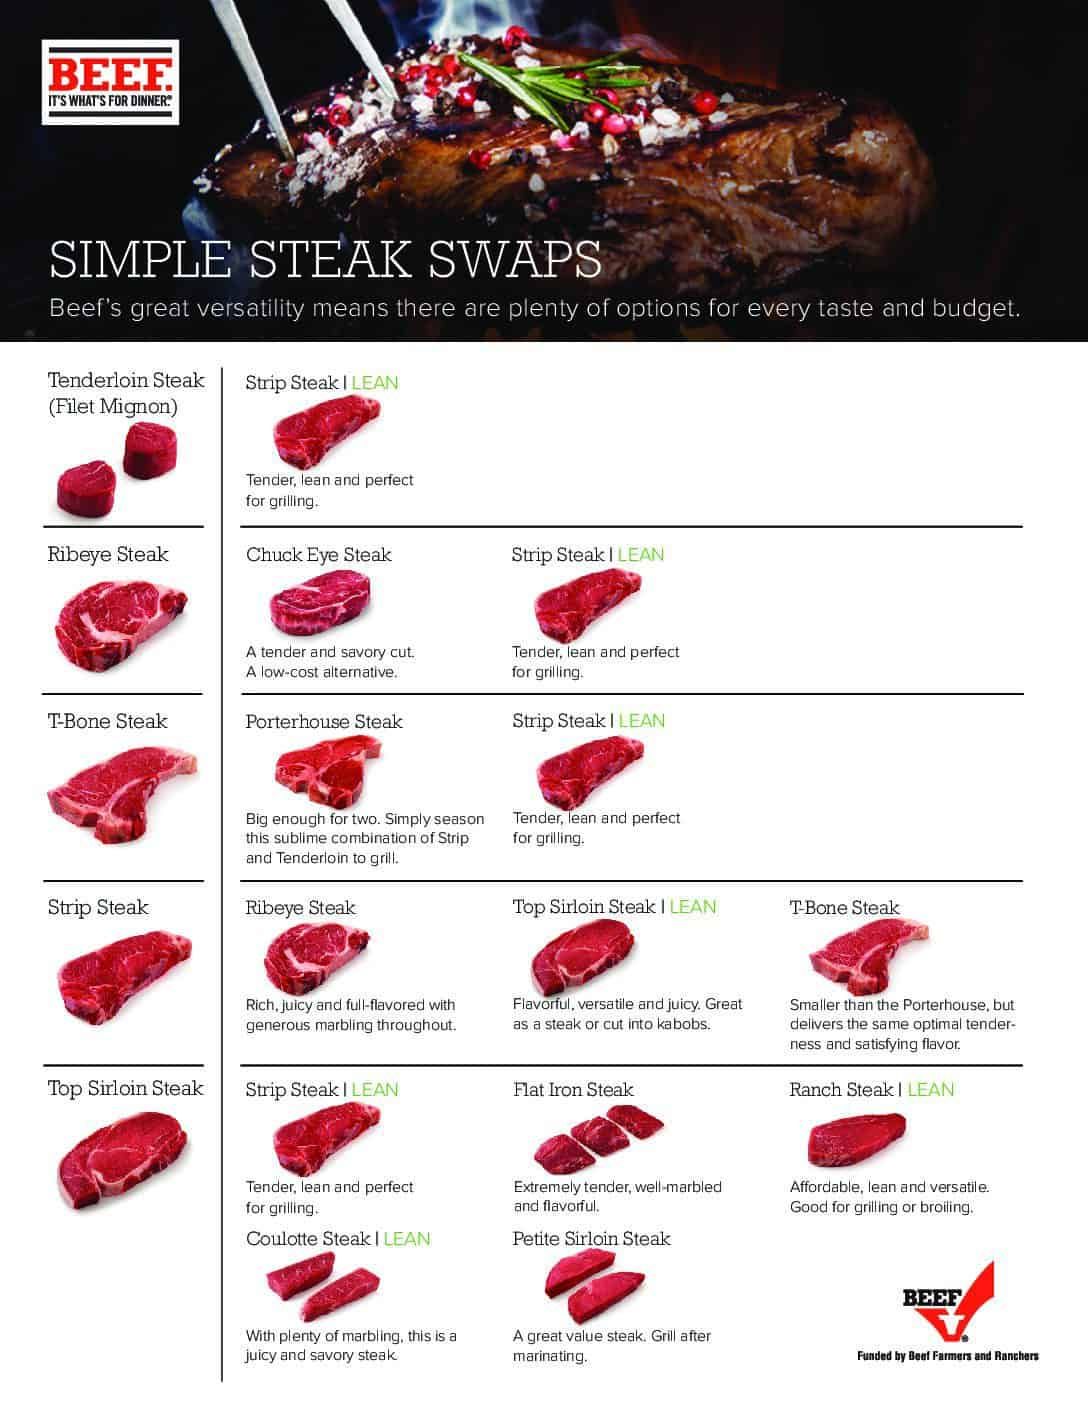 A photo collection of simple steak swaps from Beef It's what's for dinner. Examples include substituting tenderloin steak & strip steak, chuck eye steak and strip steak for ribeye and t-bone for porterhouse.